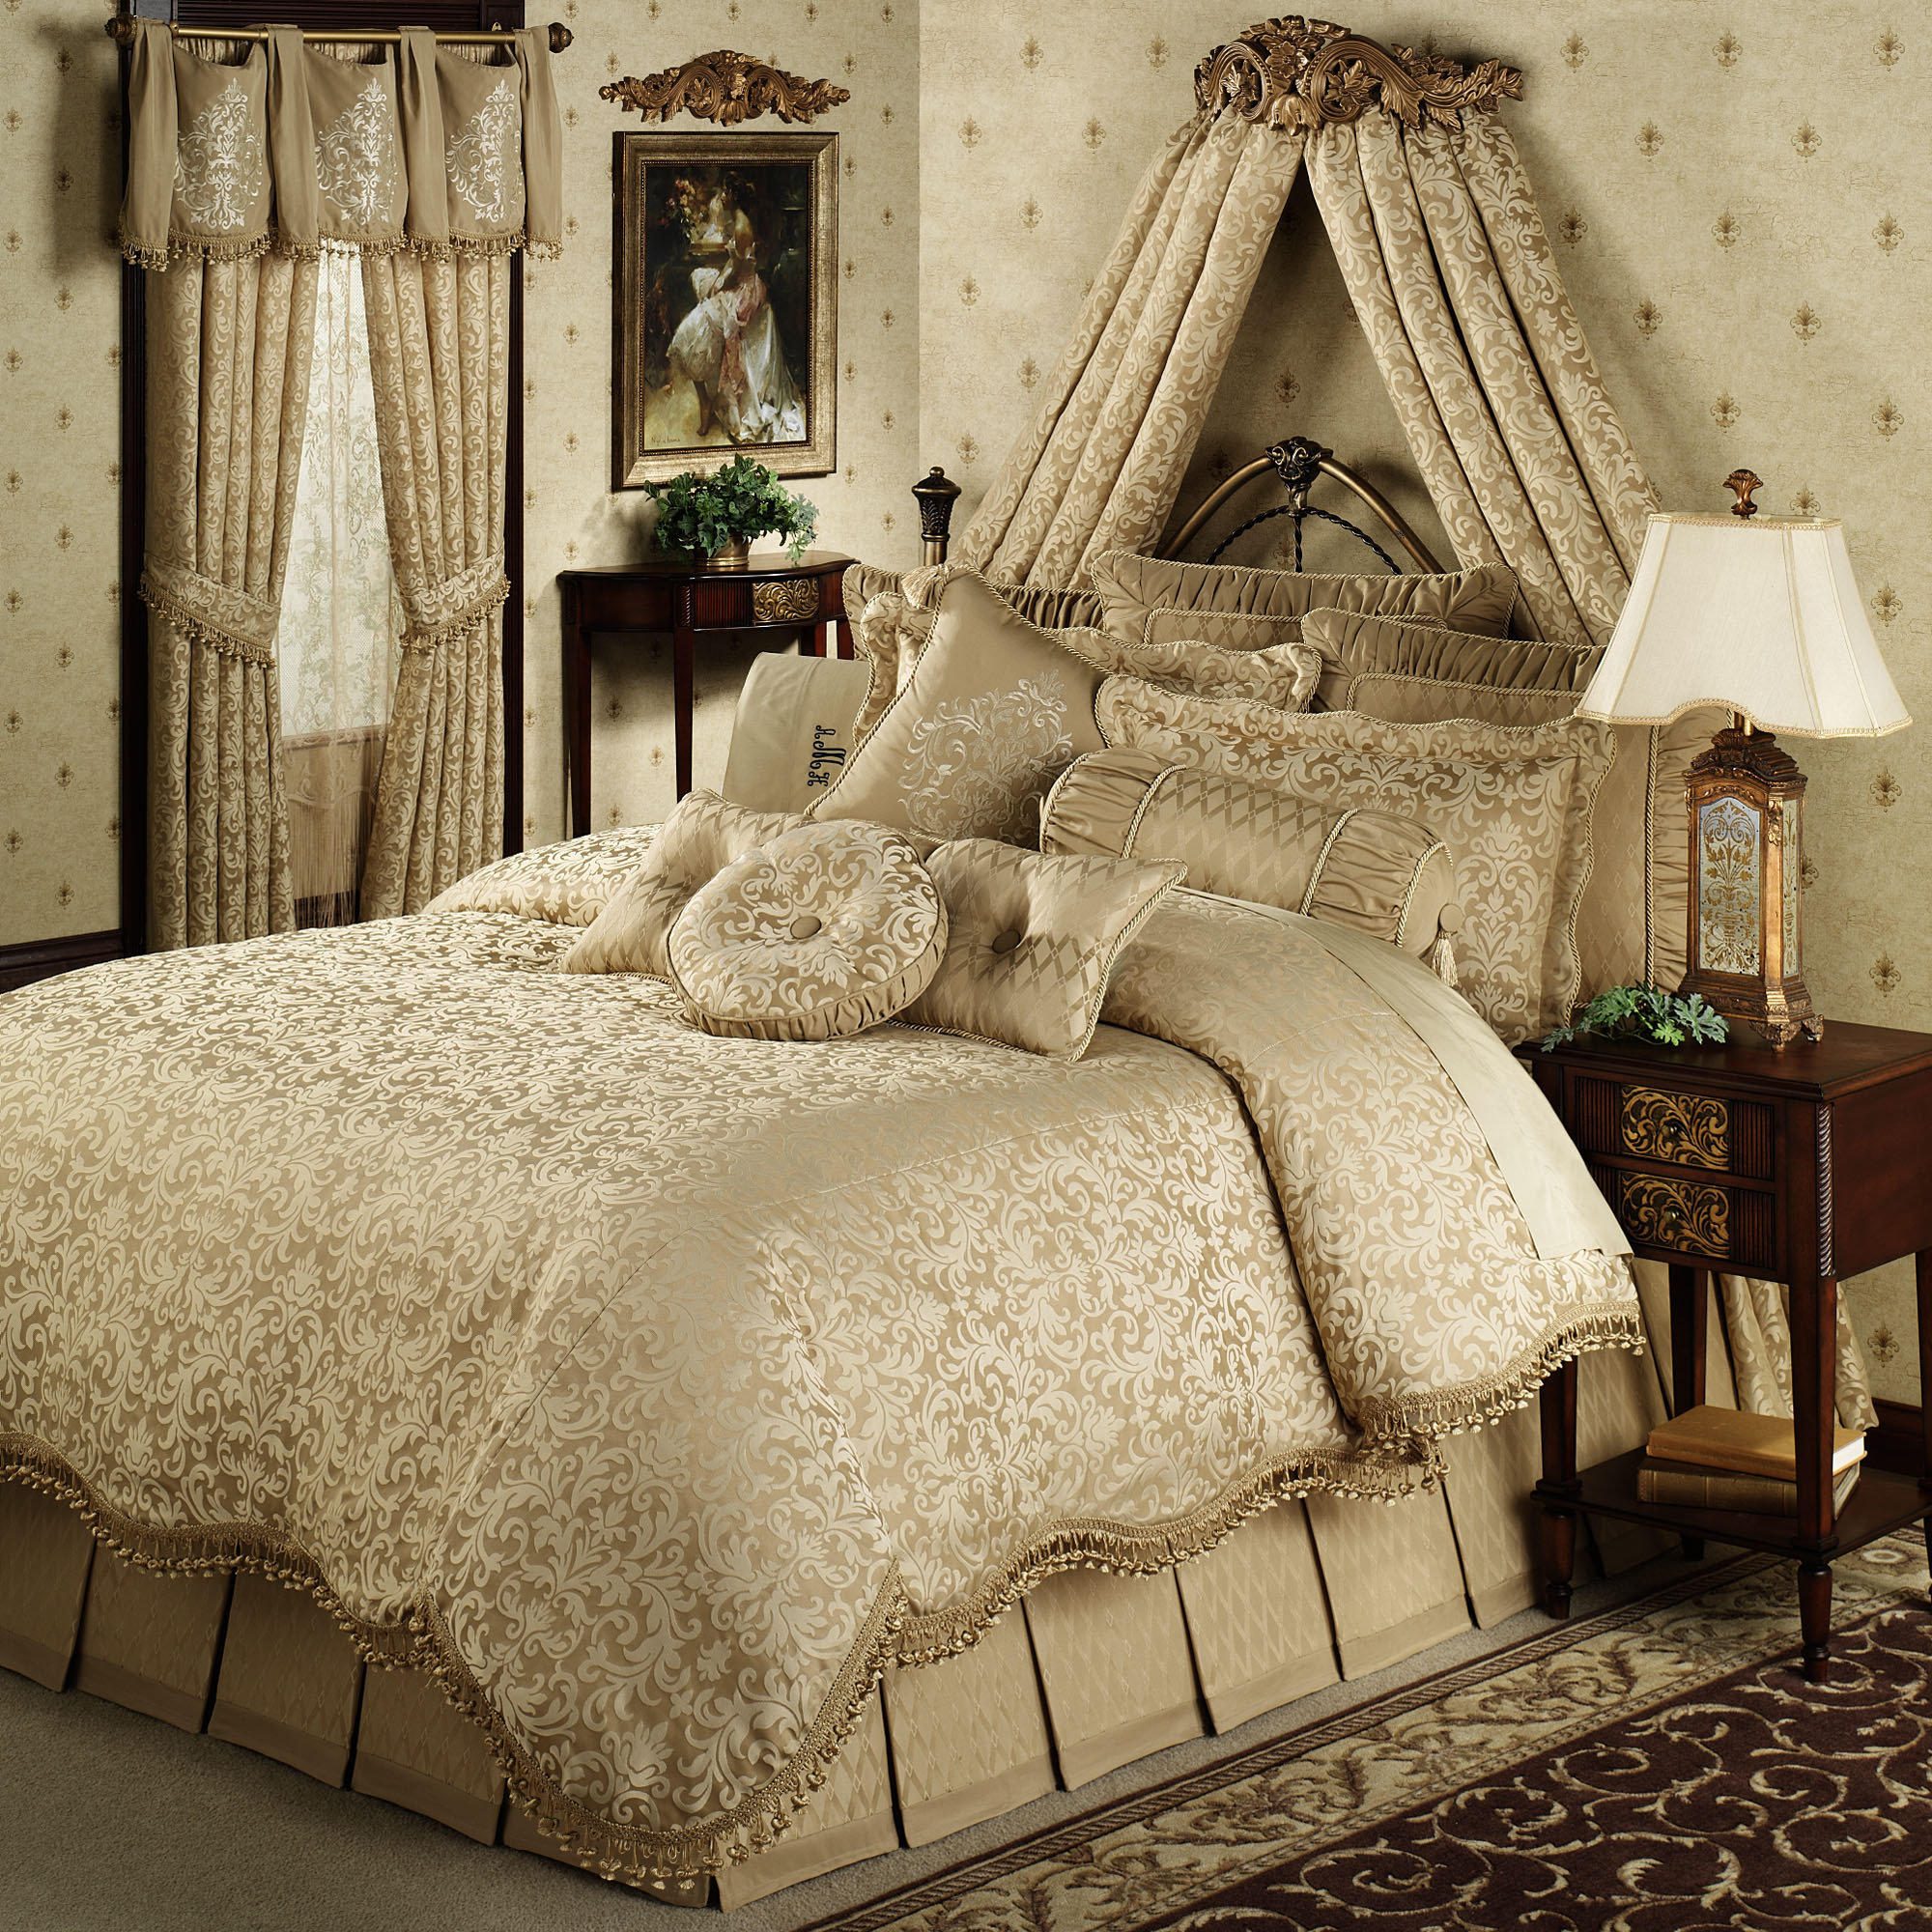 Interesting damask bedding for bed decorating ideas with damask bedding set and damask crib bedding